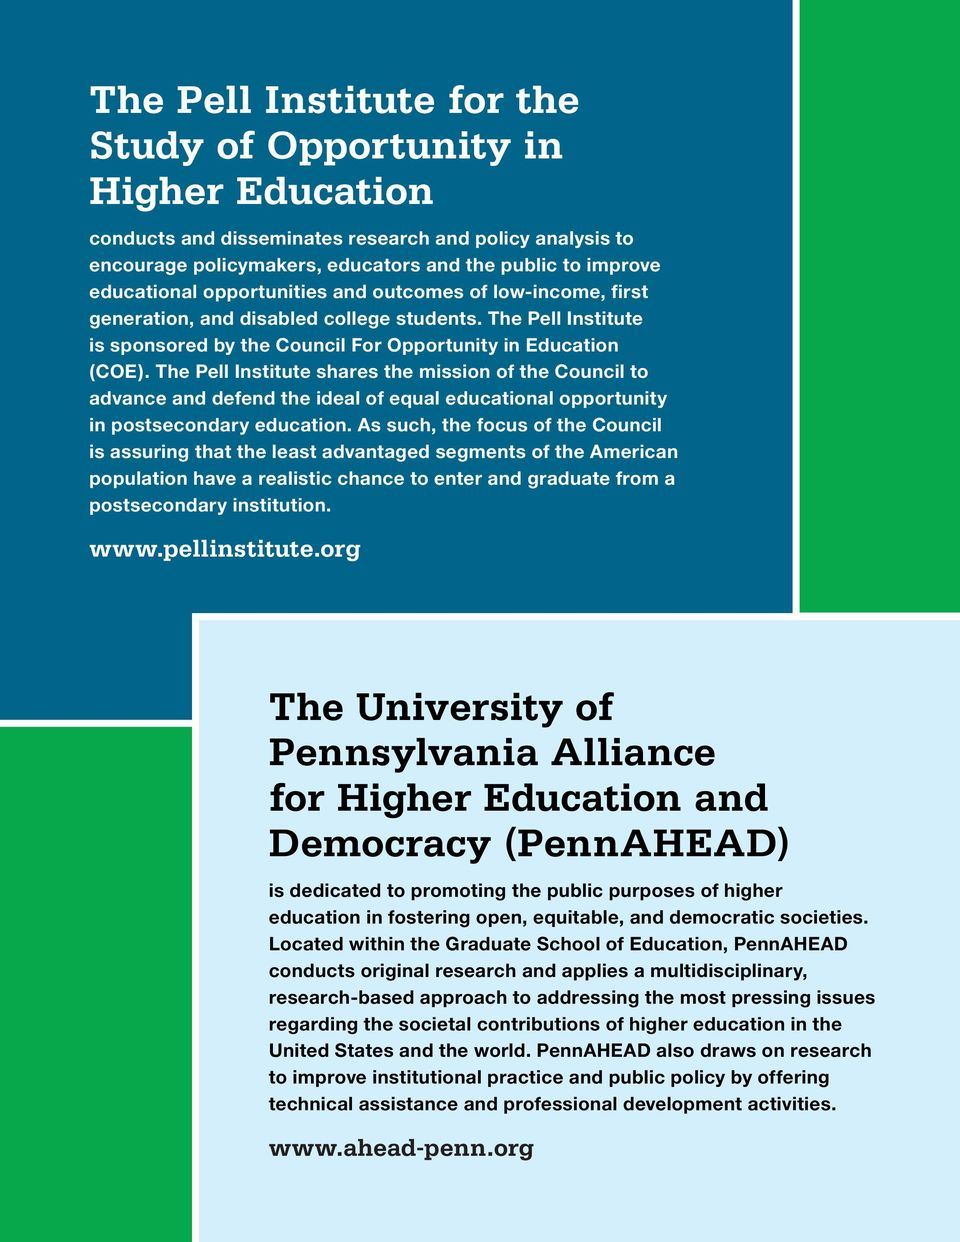 The Pell Institute shares the mission of the Council to advance and defend the ideal of equal educational opportunity in postsecondary education.